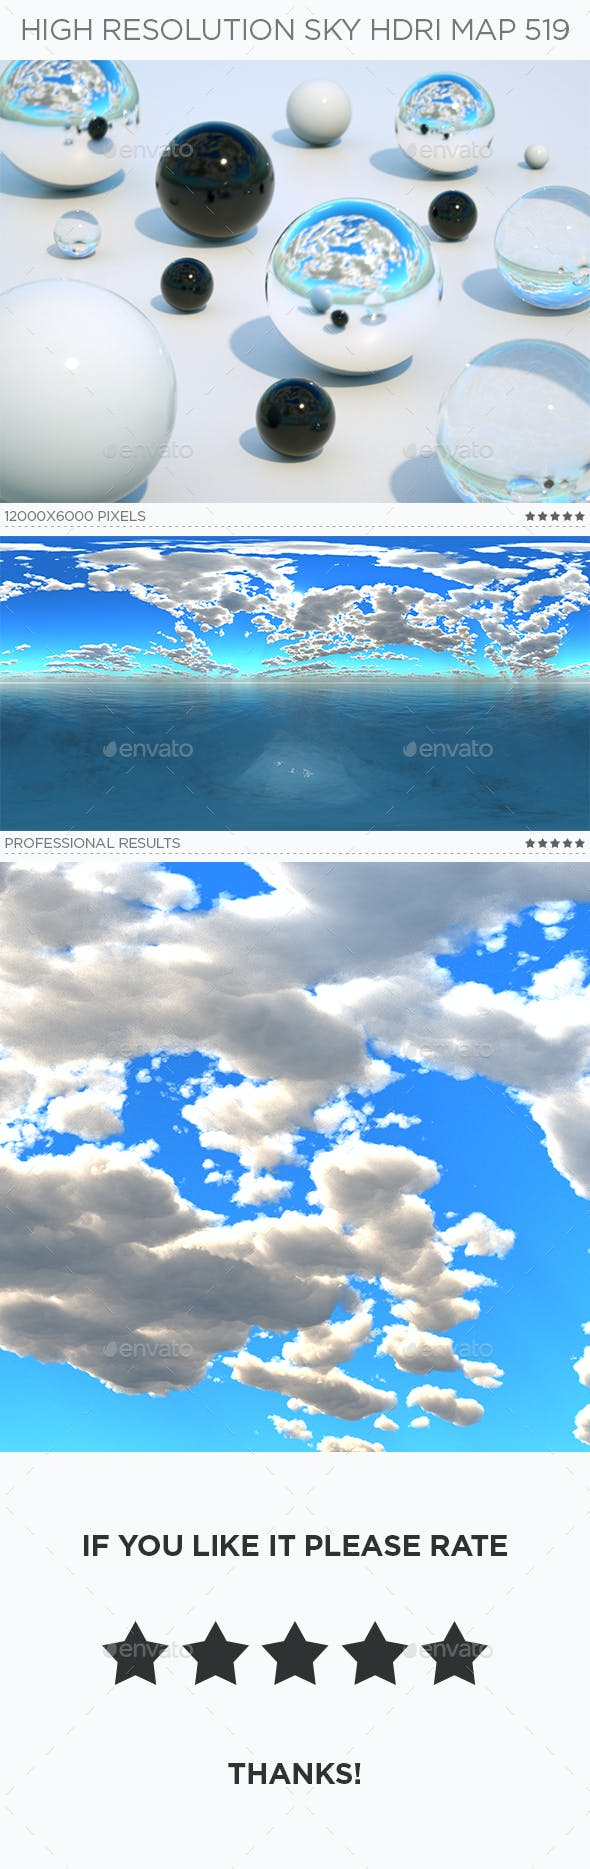 High Resolution Sky HDRi Map 519 - 3DOcean Item for Sale